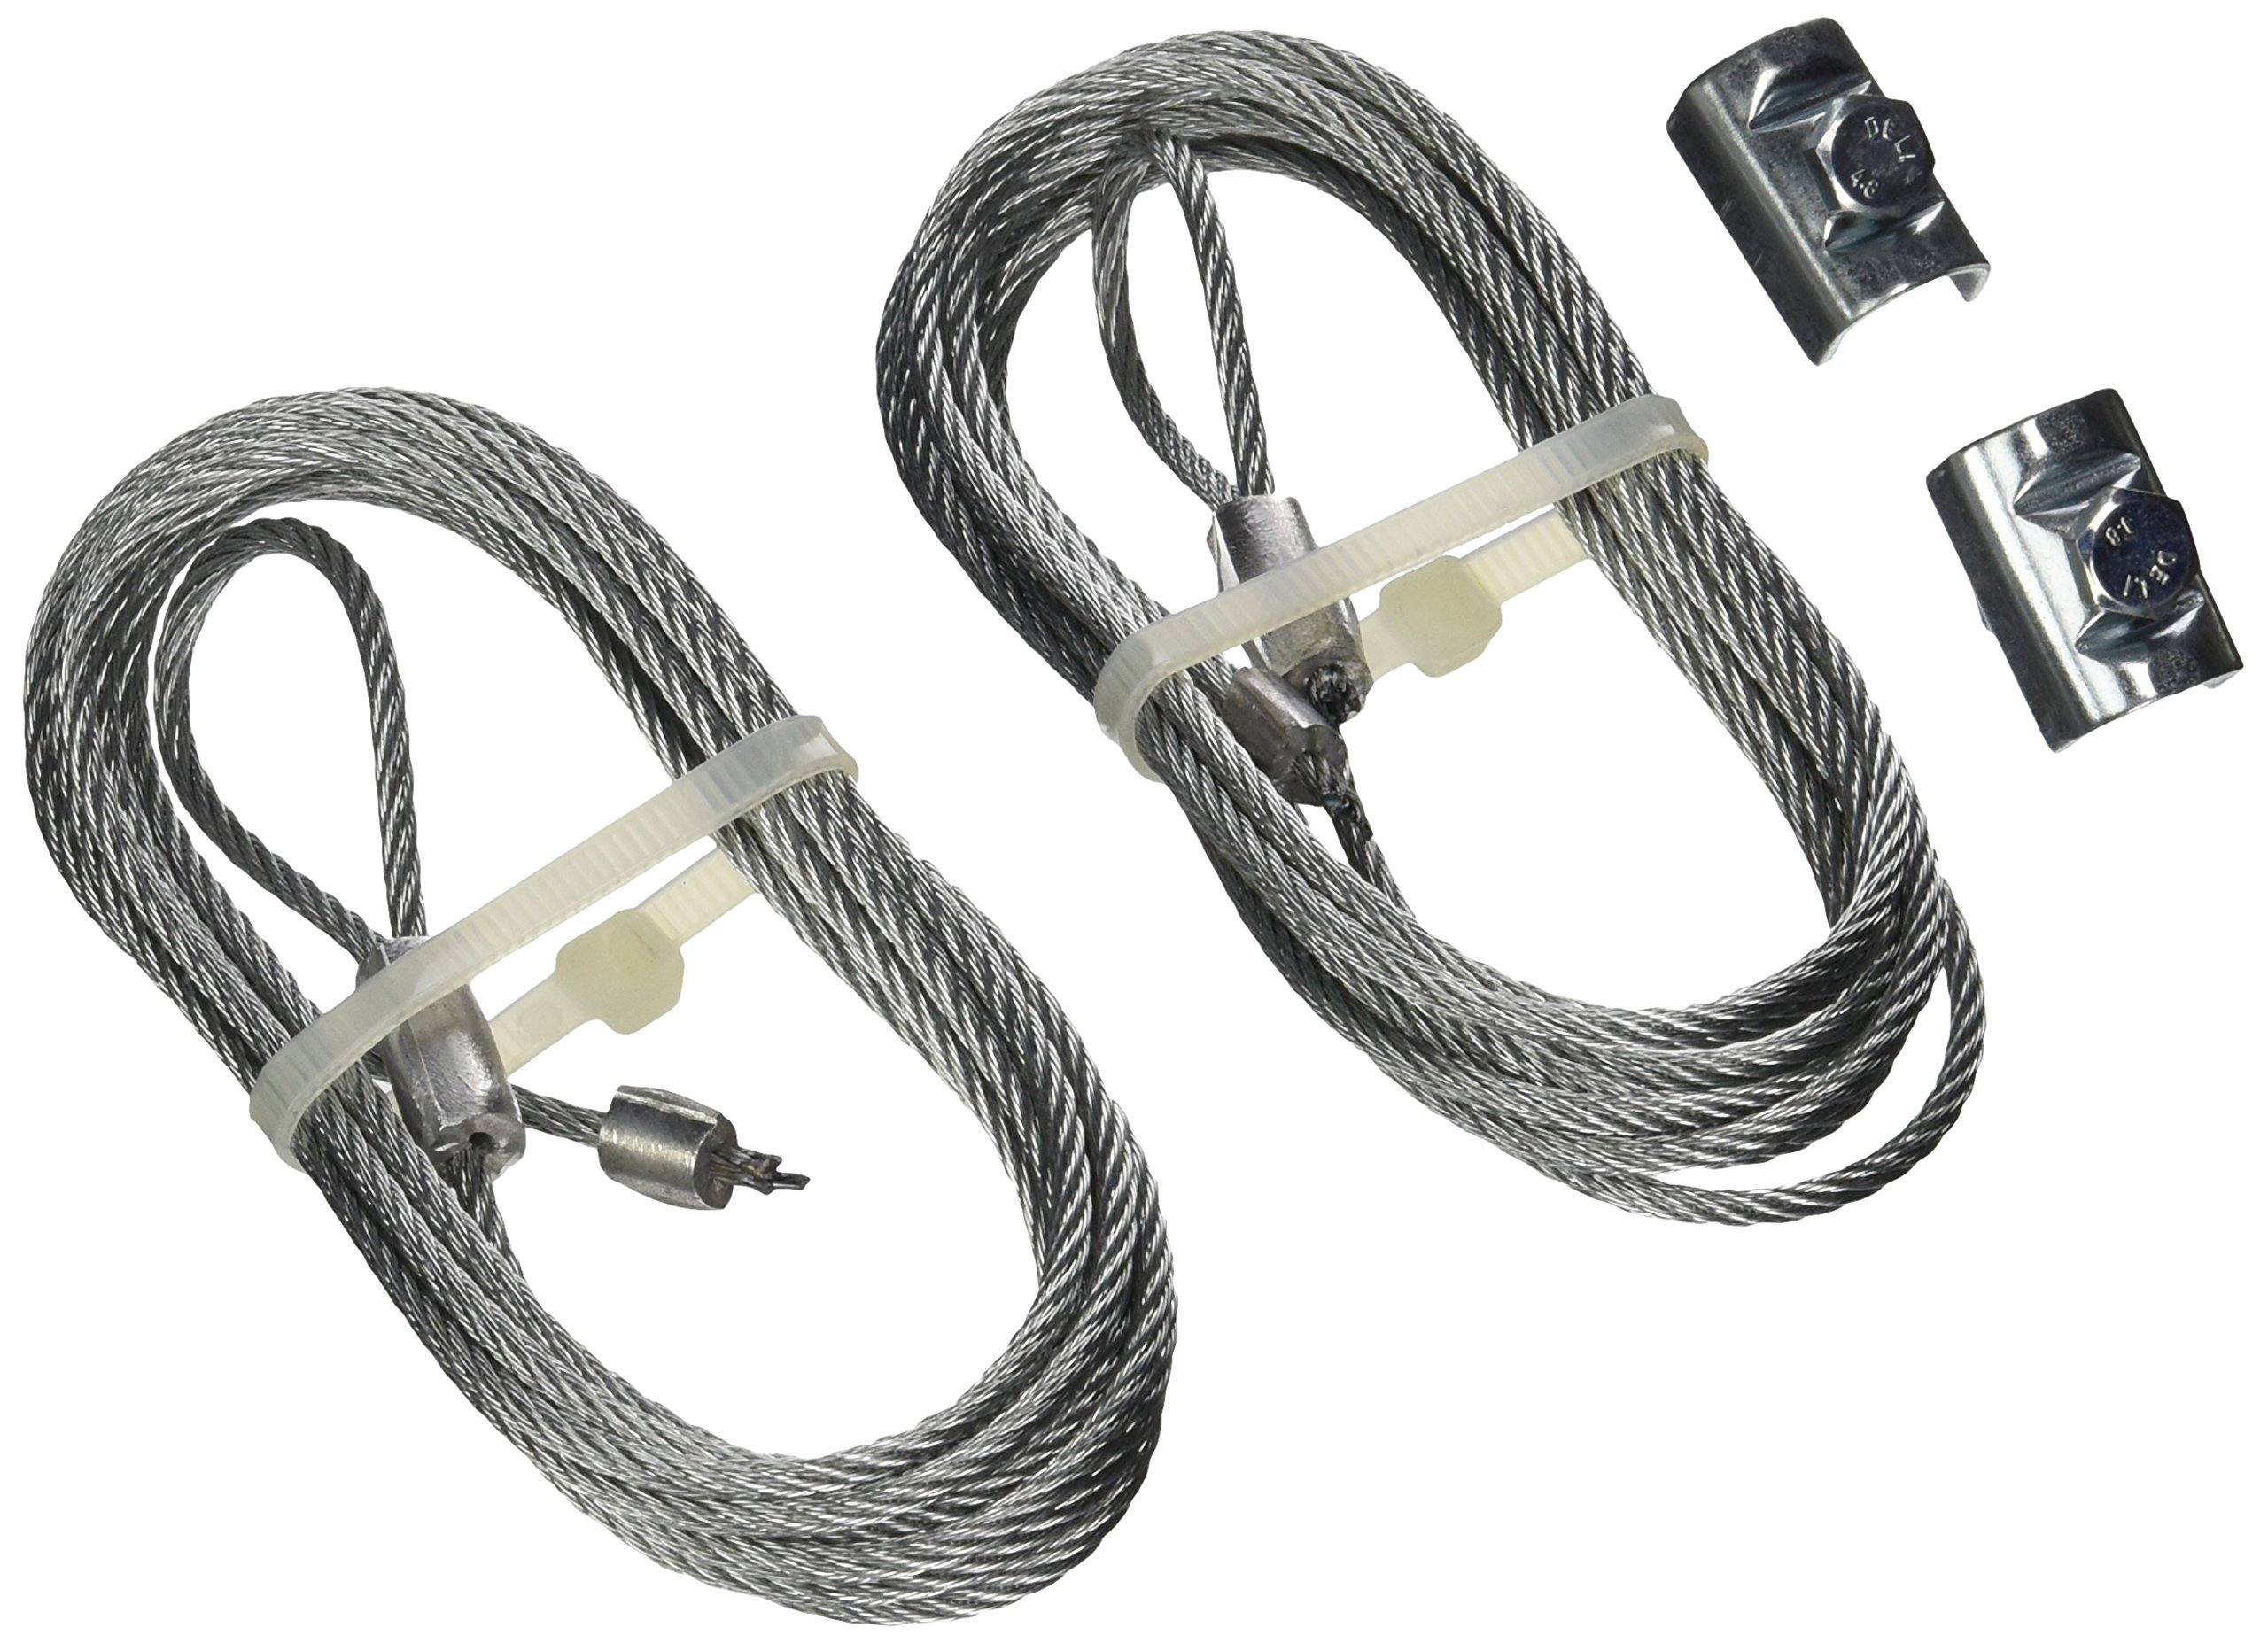 Prime-Line Products GD52102 8' Prime-Line Safety Cables